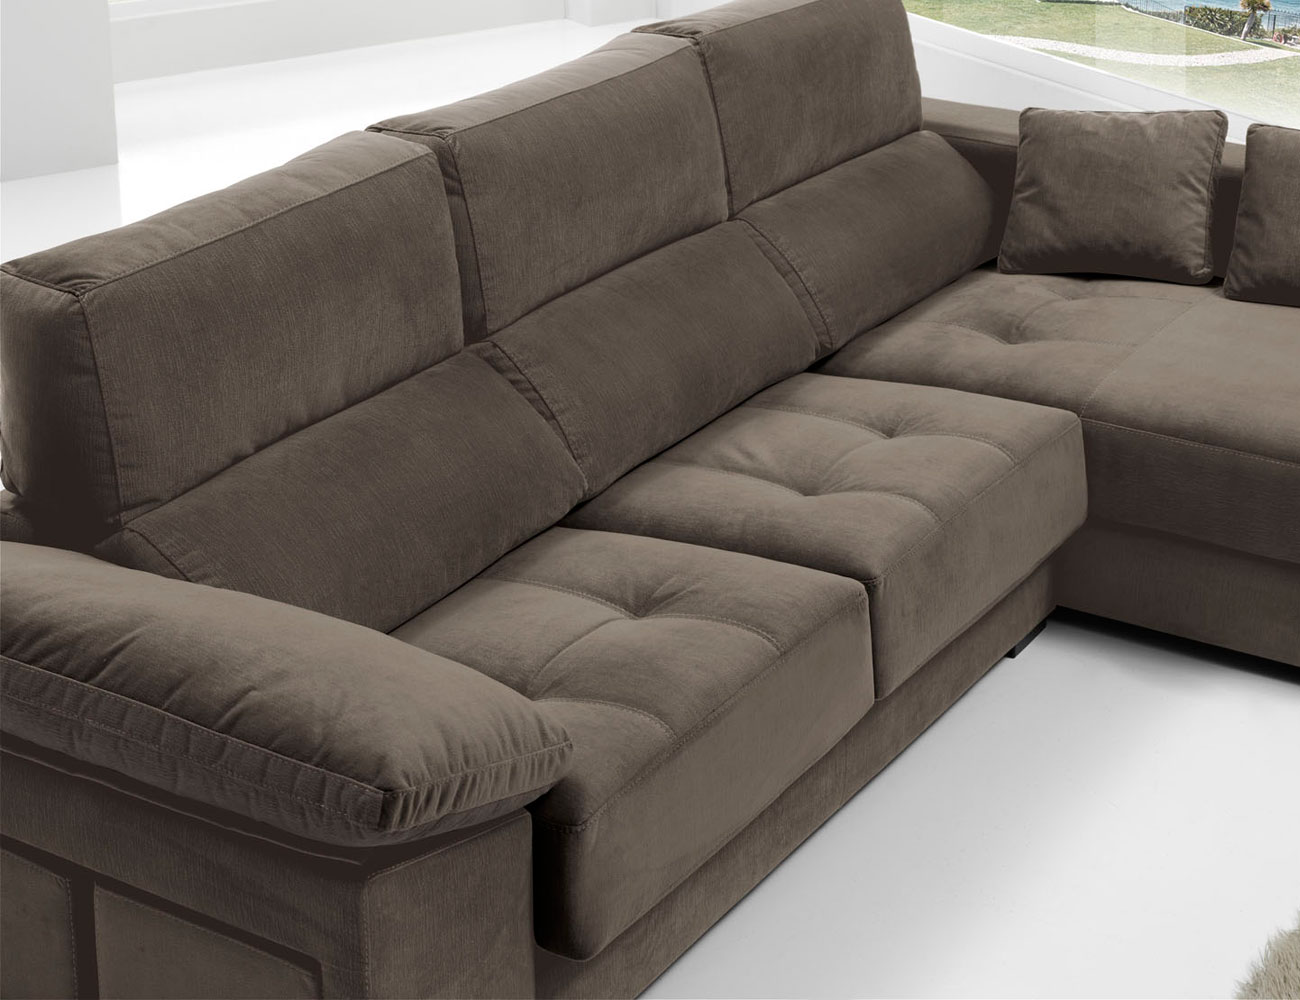 Sofa chaiselongue anti manchas bering pouf 234